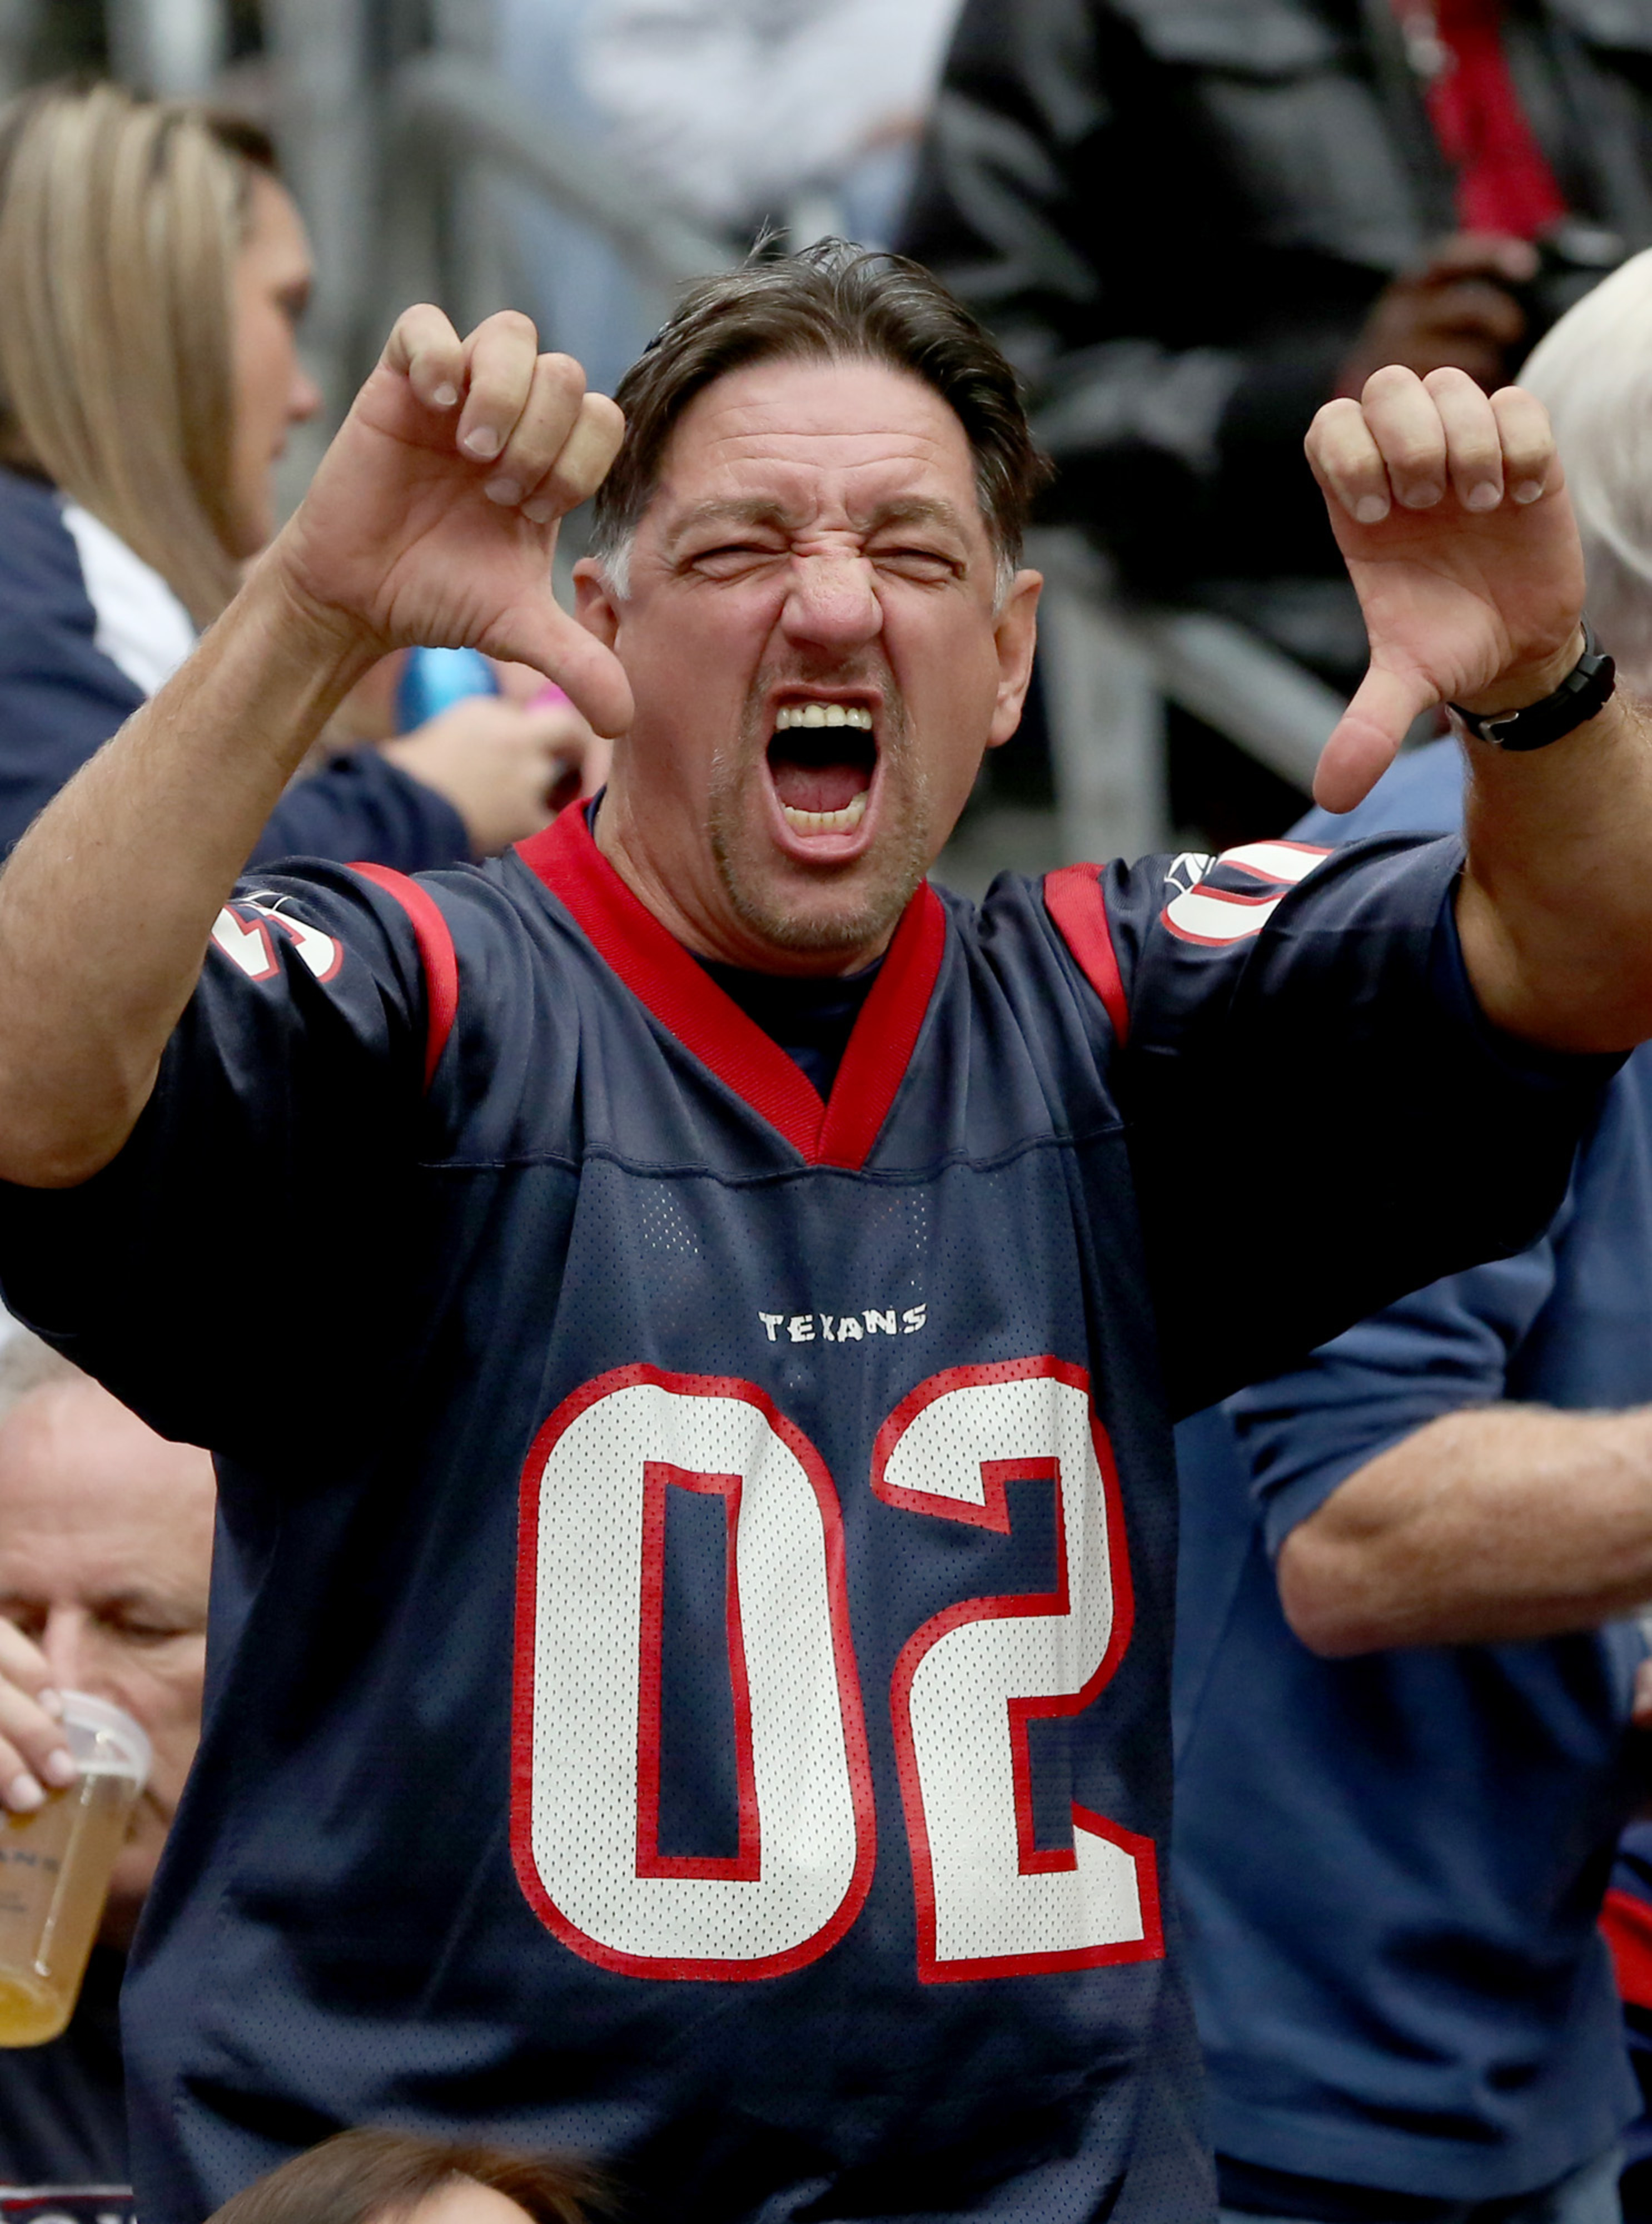 """Nothing says, """"I'm displeased with my football team"""" like two thumbs down and a sour visage."""